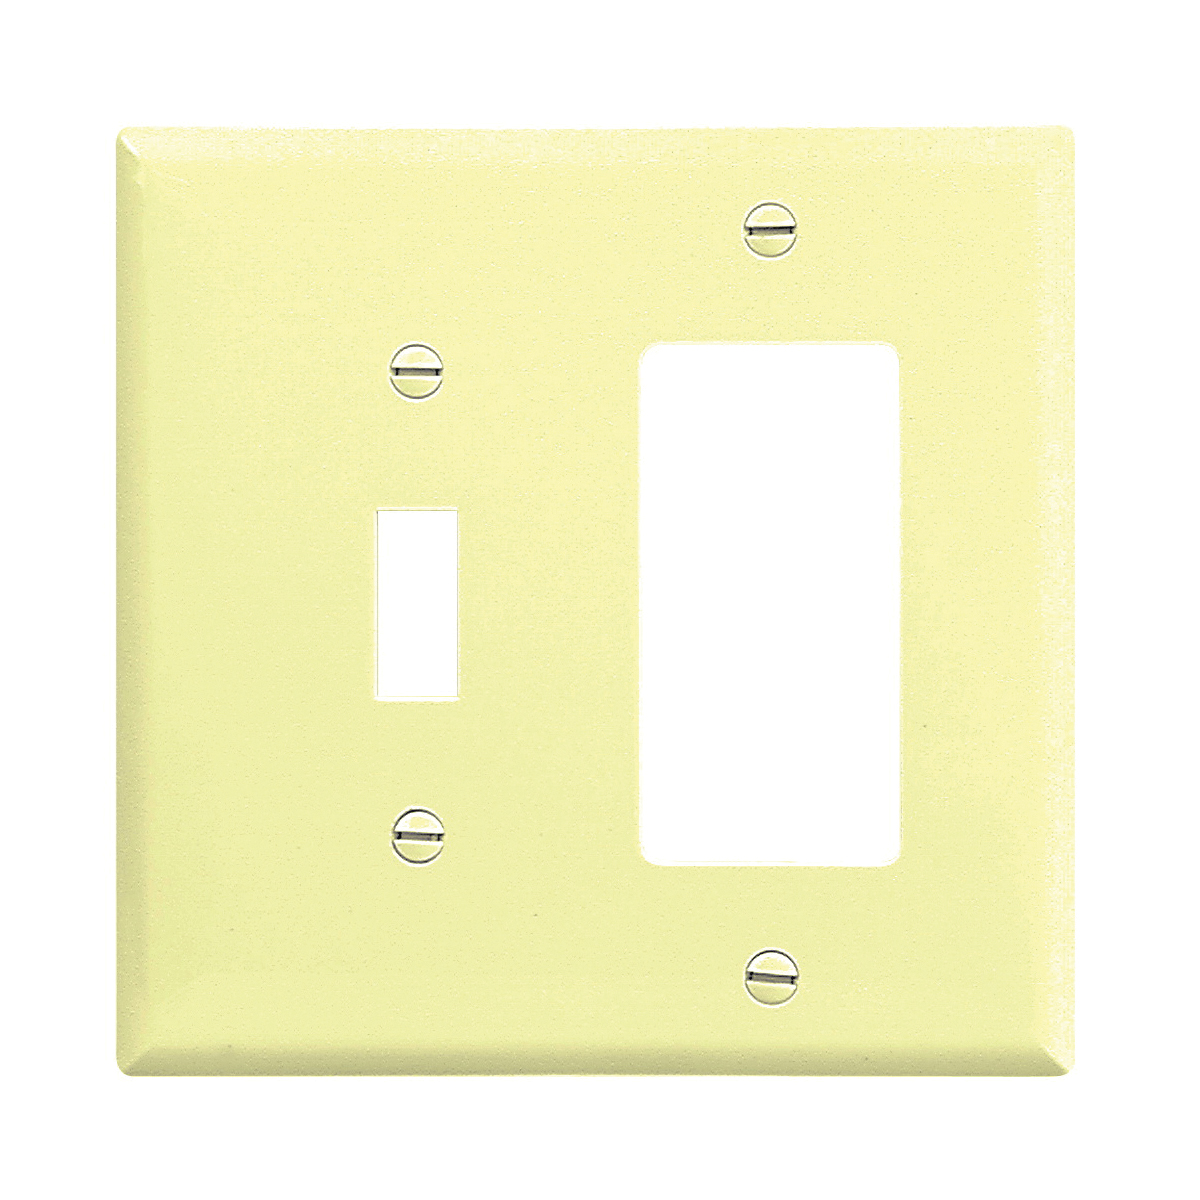 Picture of Eaton Wiring Devices 2153V-BOX Wallplate, 4-1/2 in L, 4-9/16 in W, 2-Gang, Thermoset, Ivory, High-Gloss